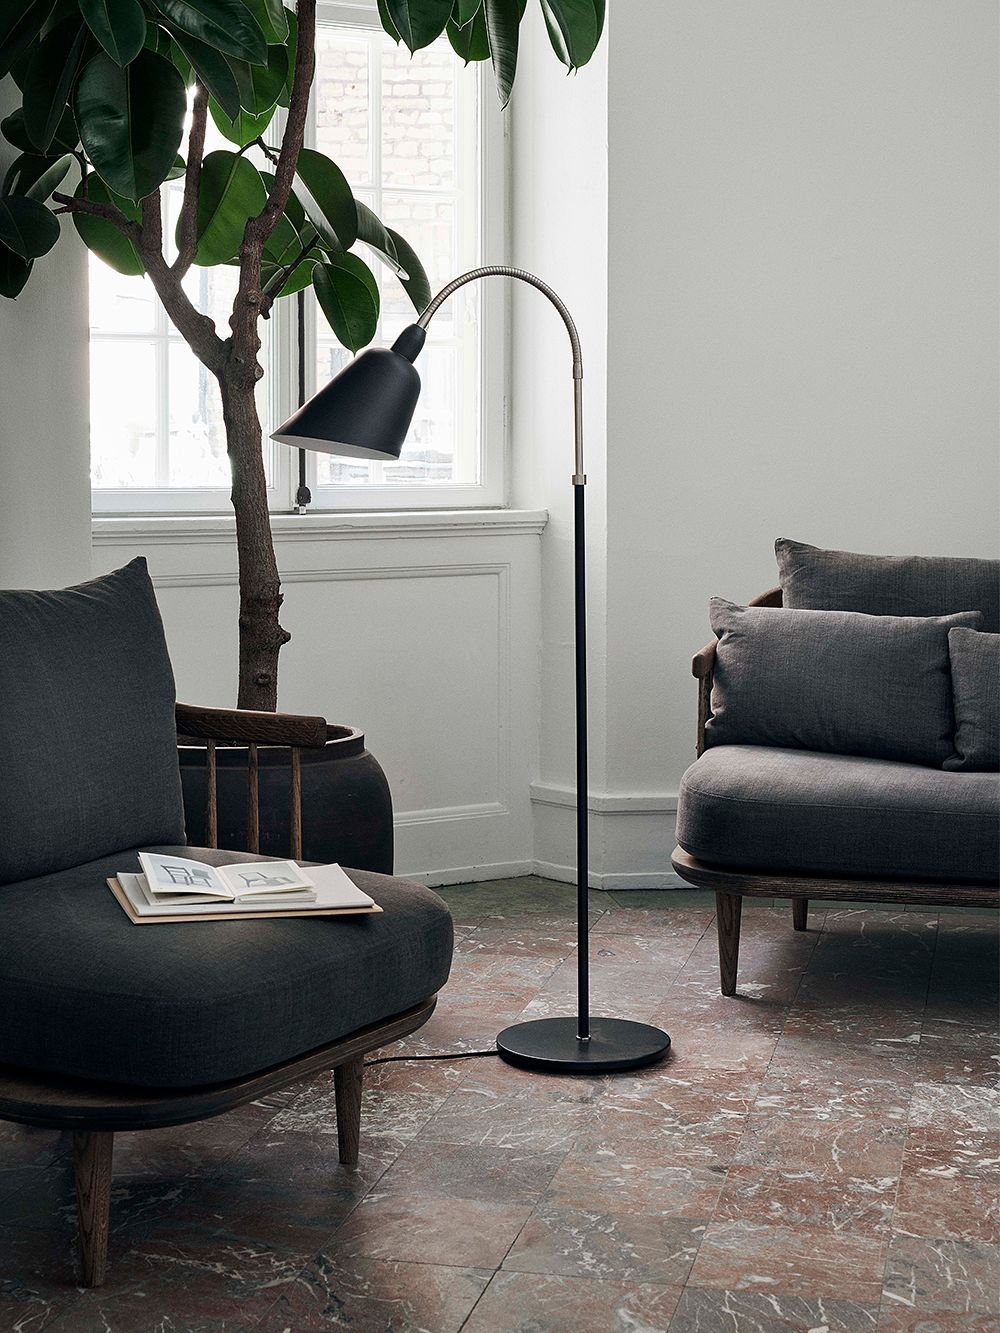 &Traditionin Fly SC1 lounge chairs in living room decor.